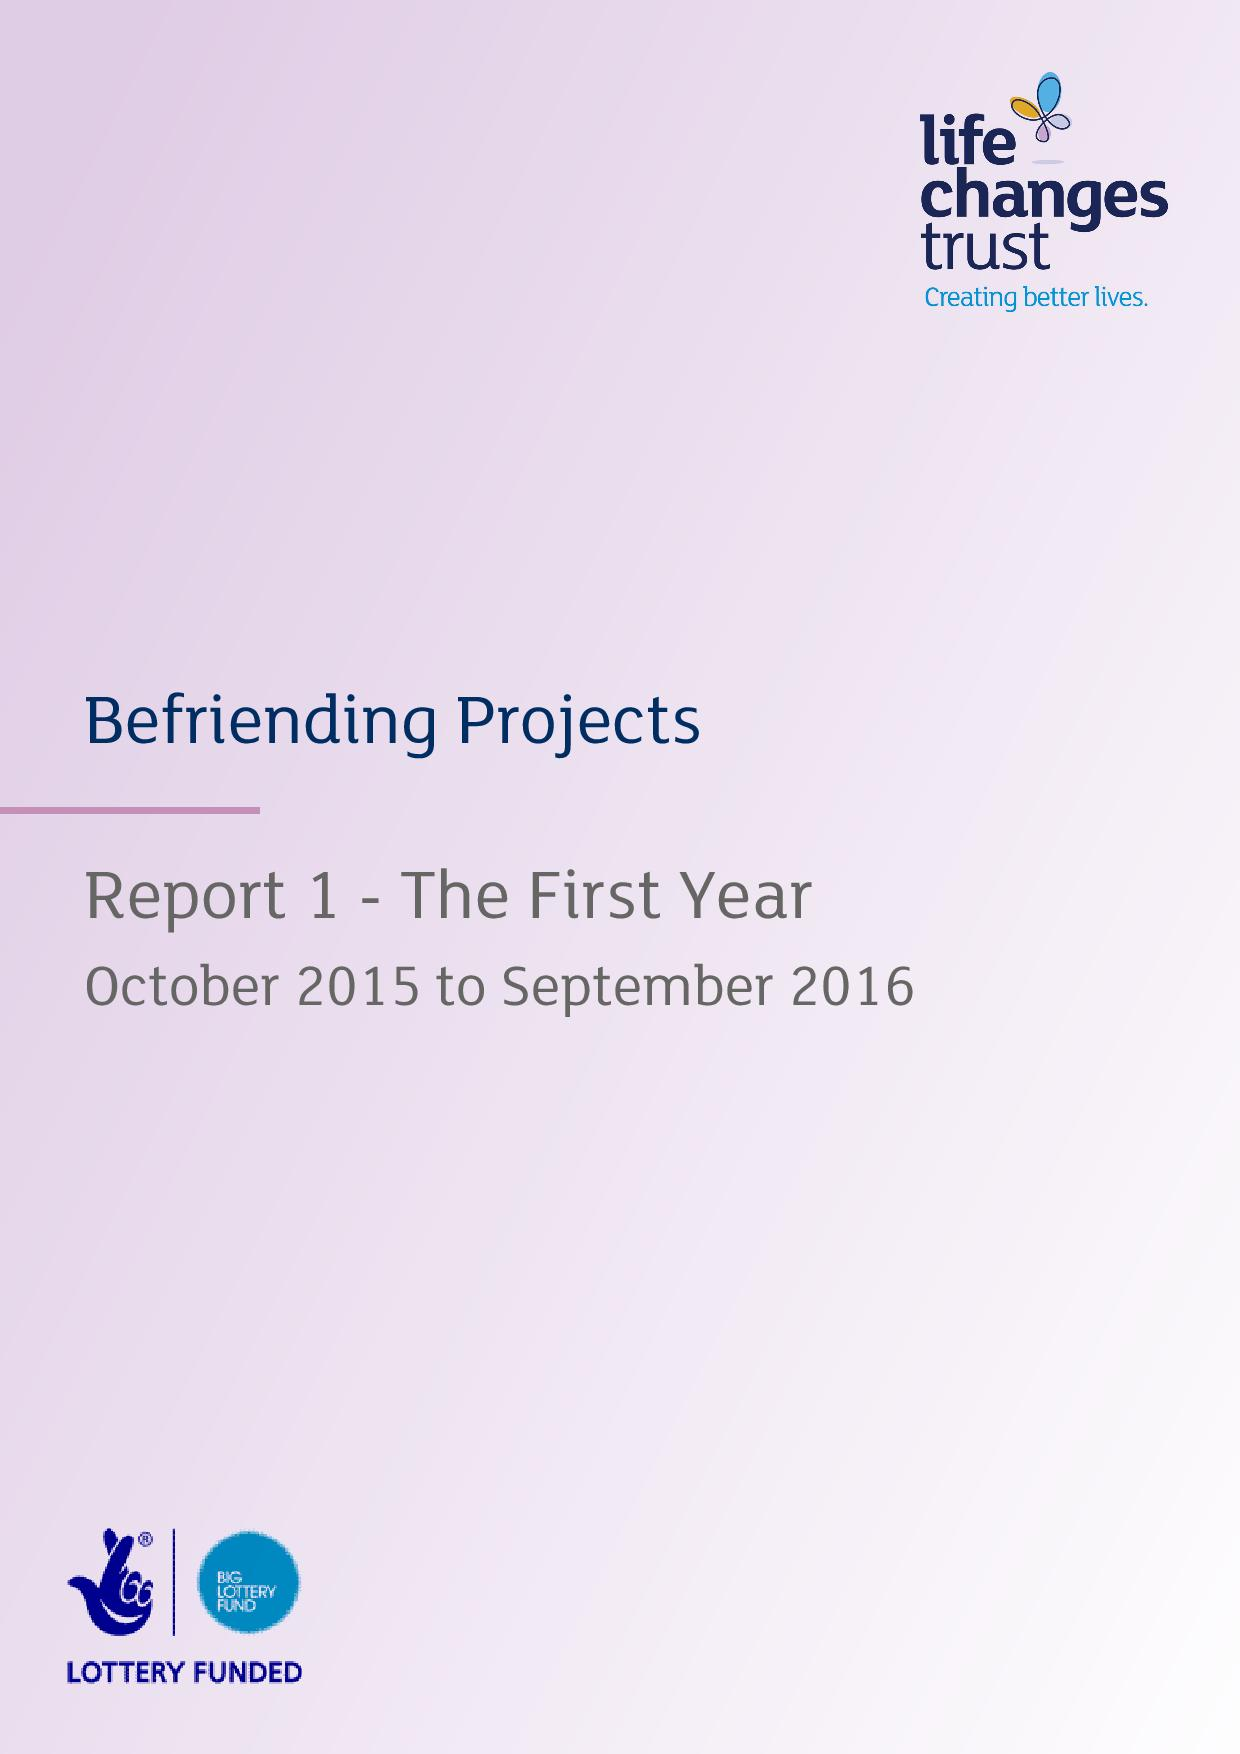 Befriending Projects - Report 1 - The First Year